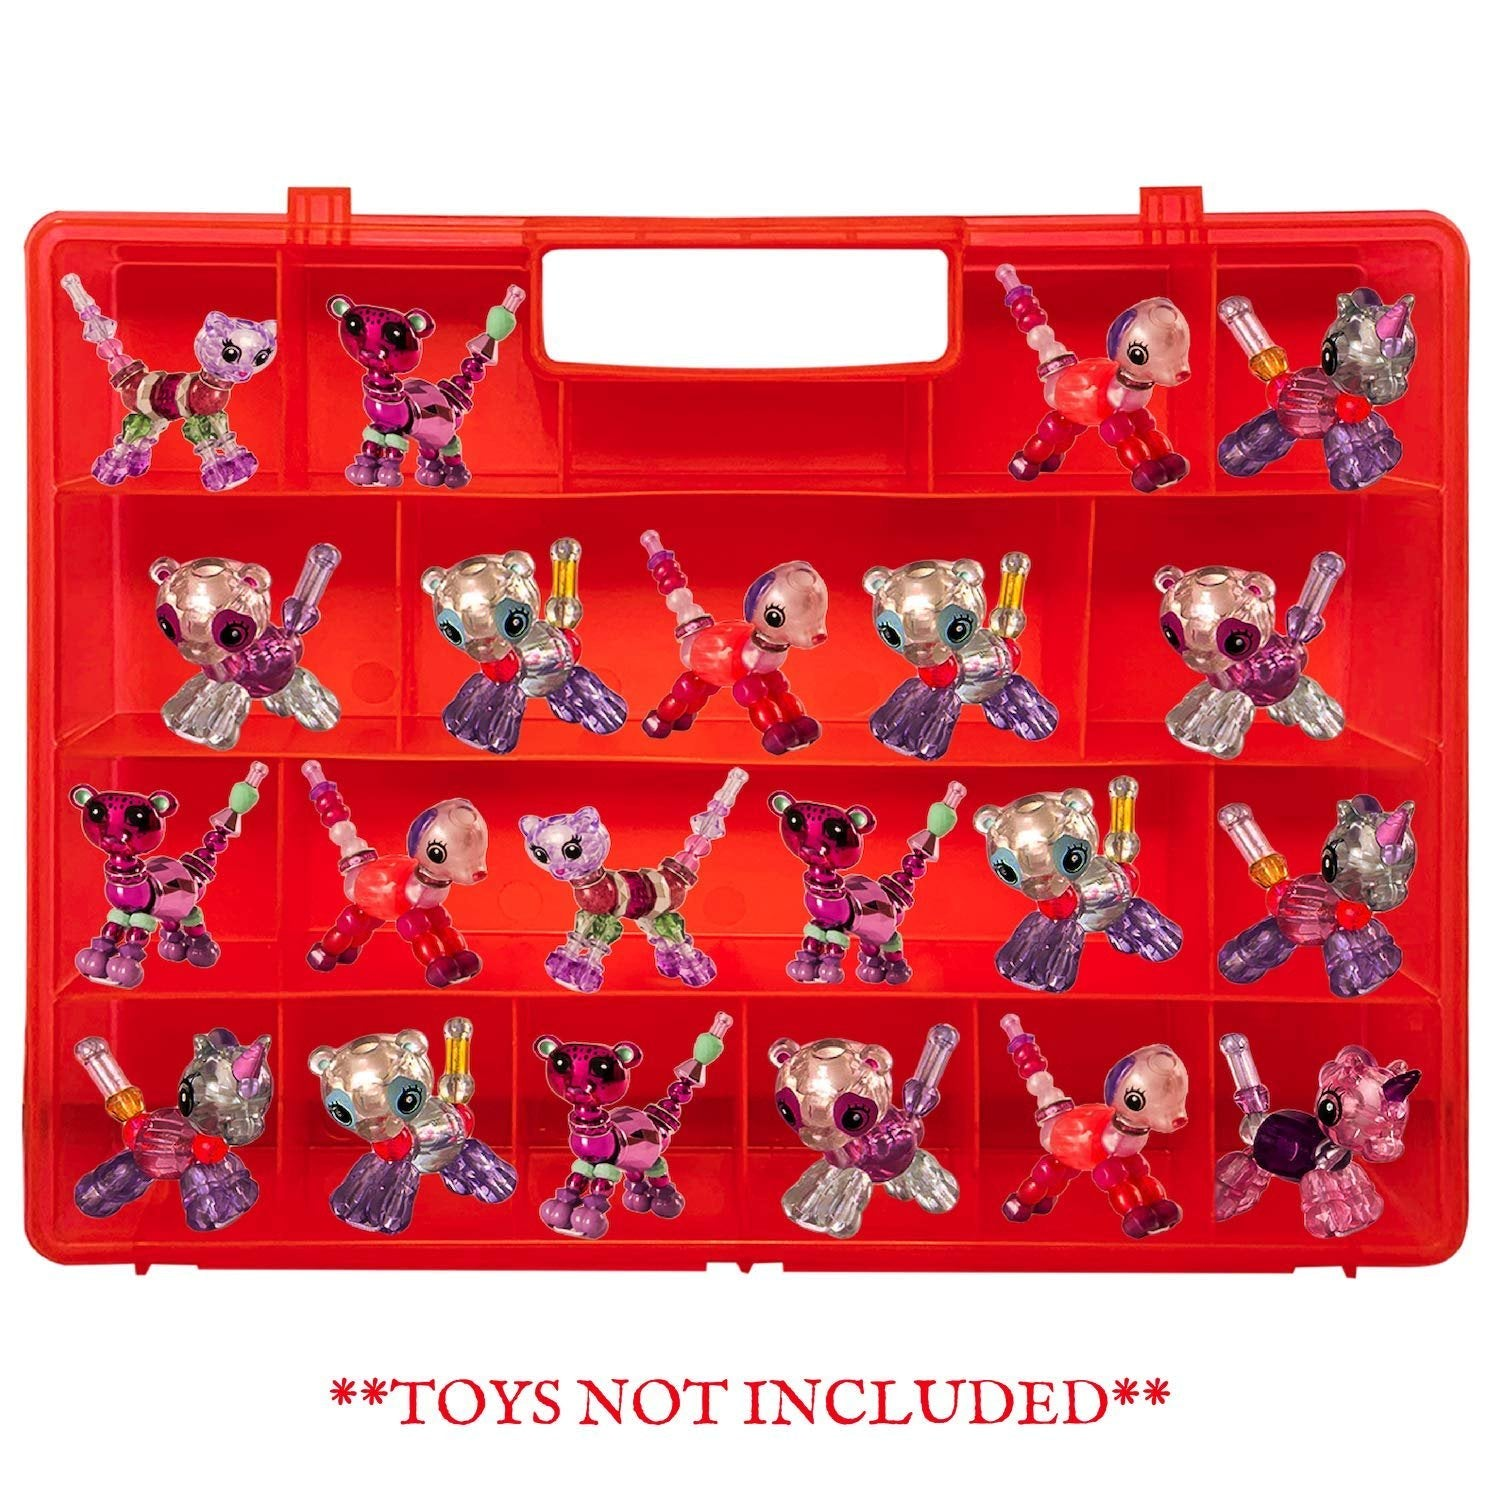 Life Made Better, Red Kid Proof Toy Case, Advanced 2.0 Design with Stable Hinges & Dependable Clasps, Compatible with Twisty Petz, not Made by Twisty Petz, Created by LMB